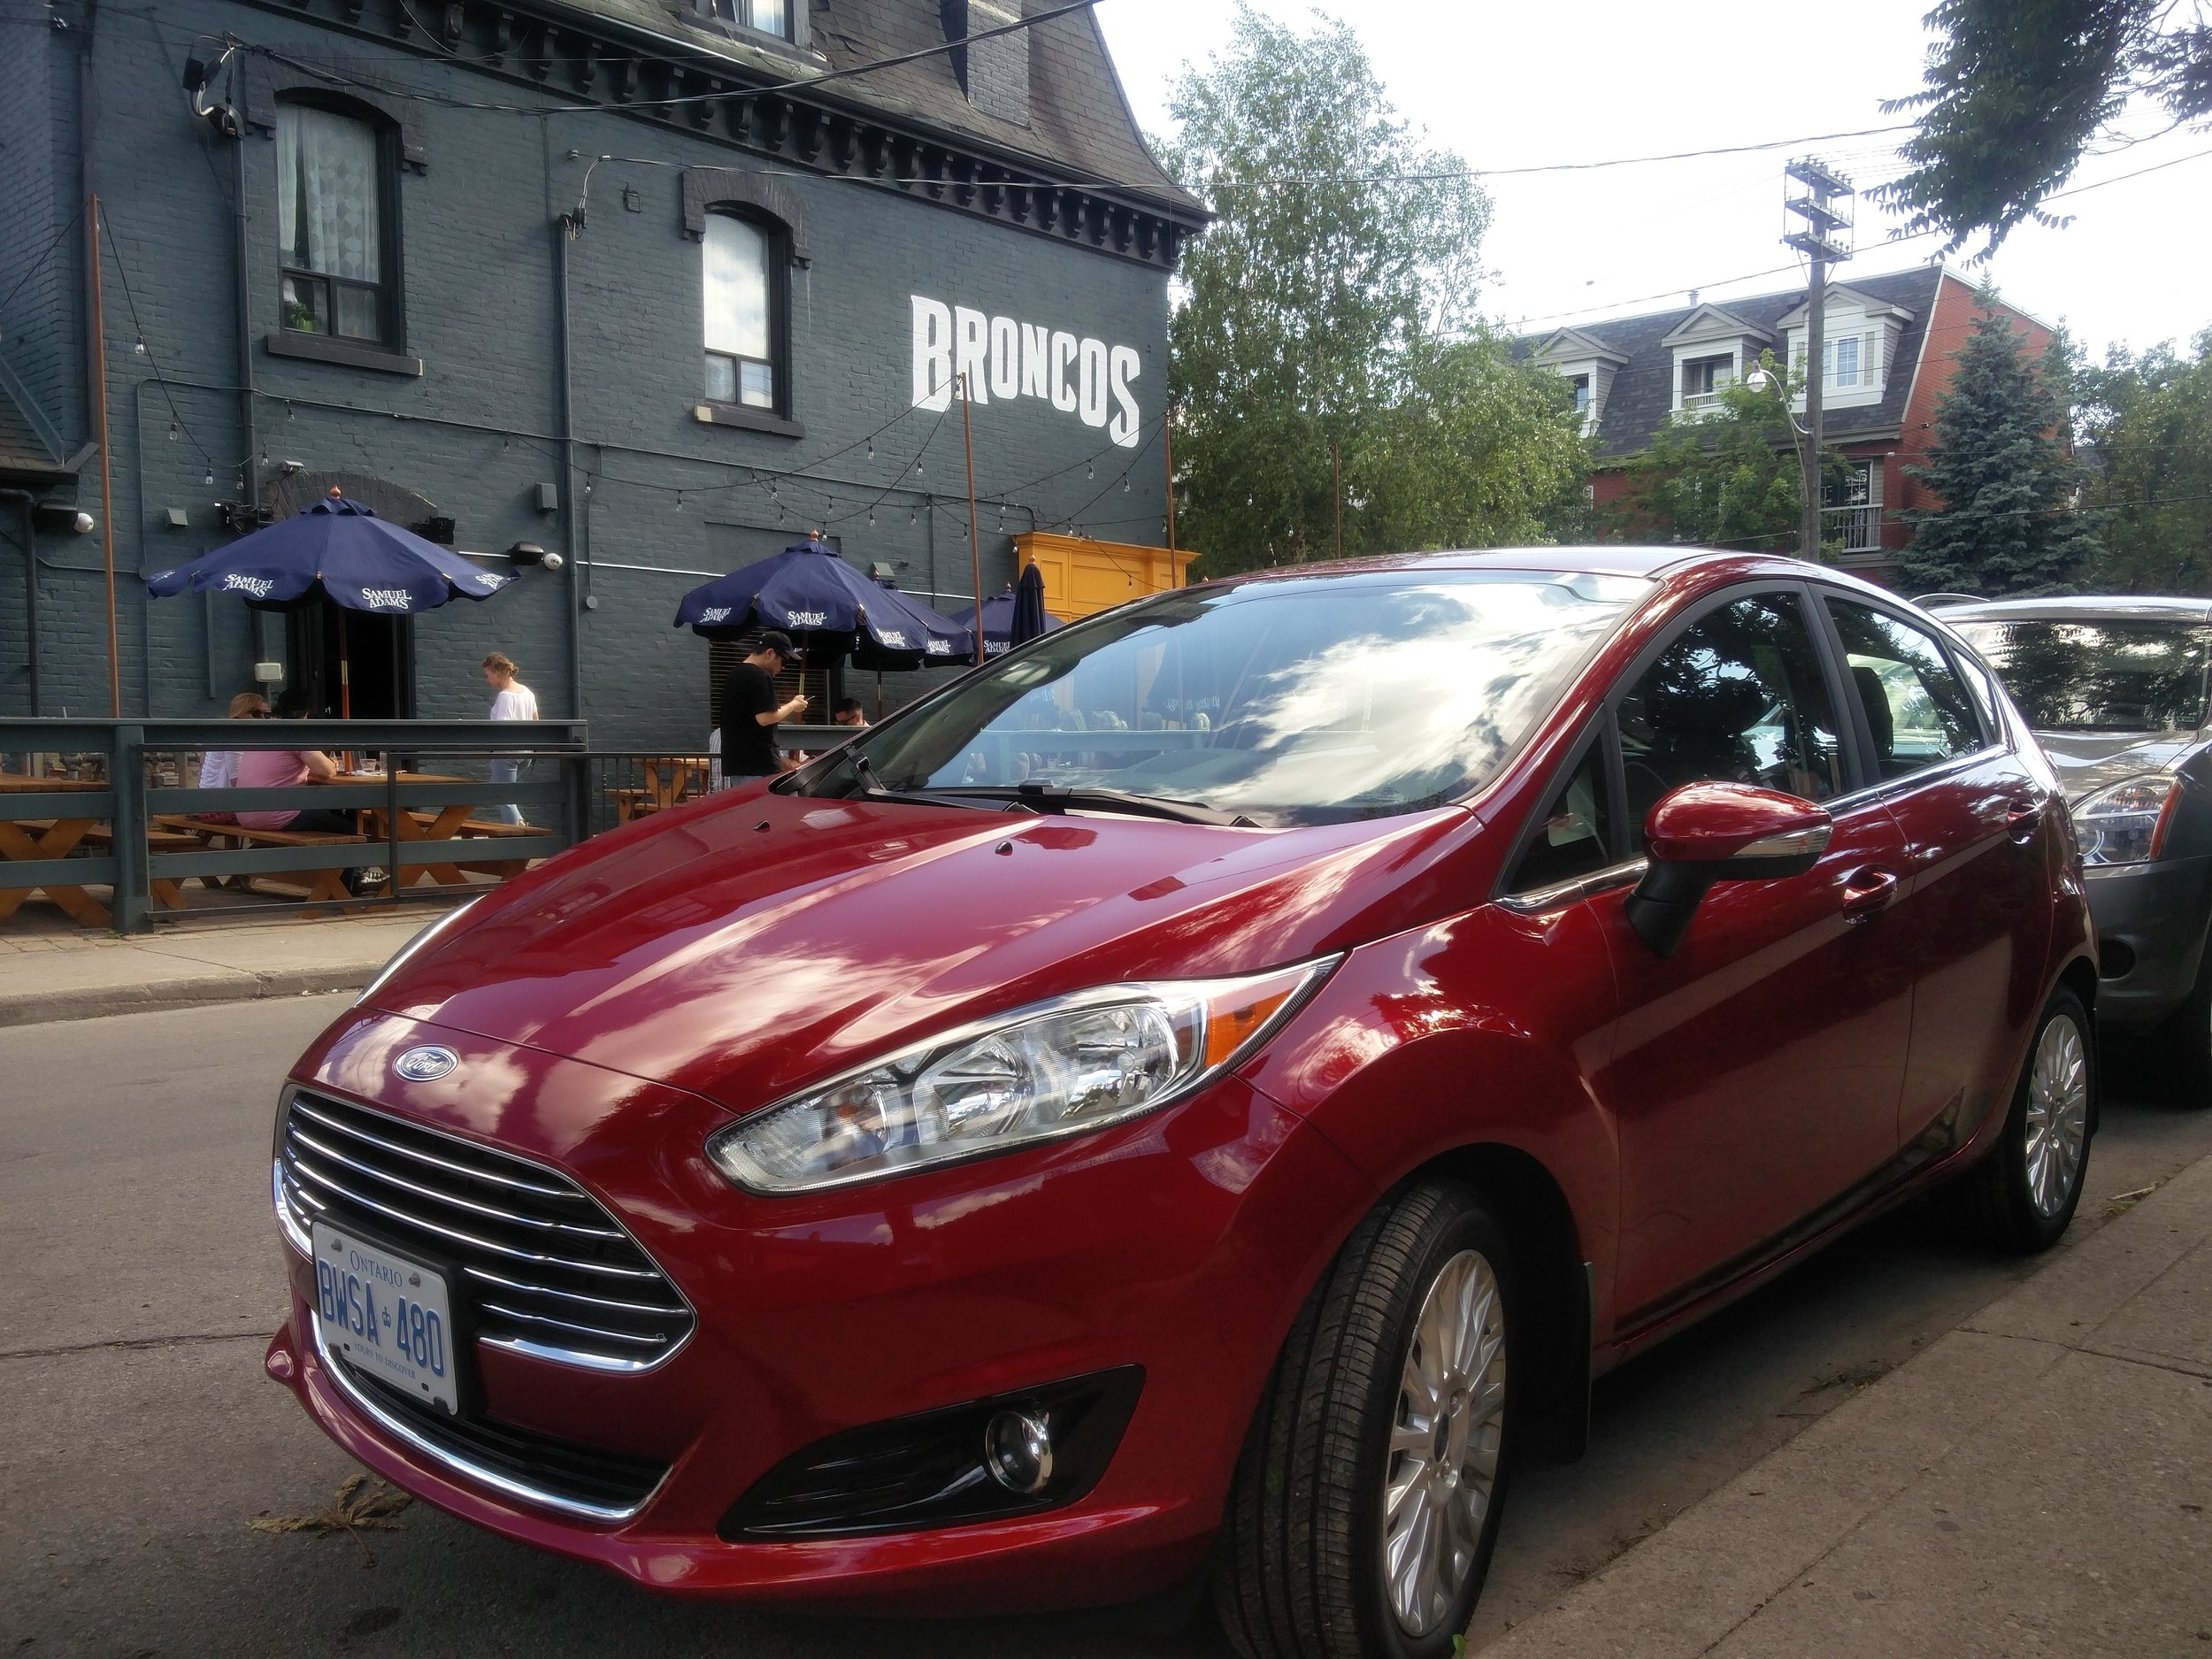 Ford Fiesta at Broncos